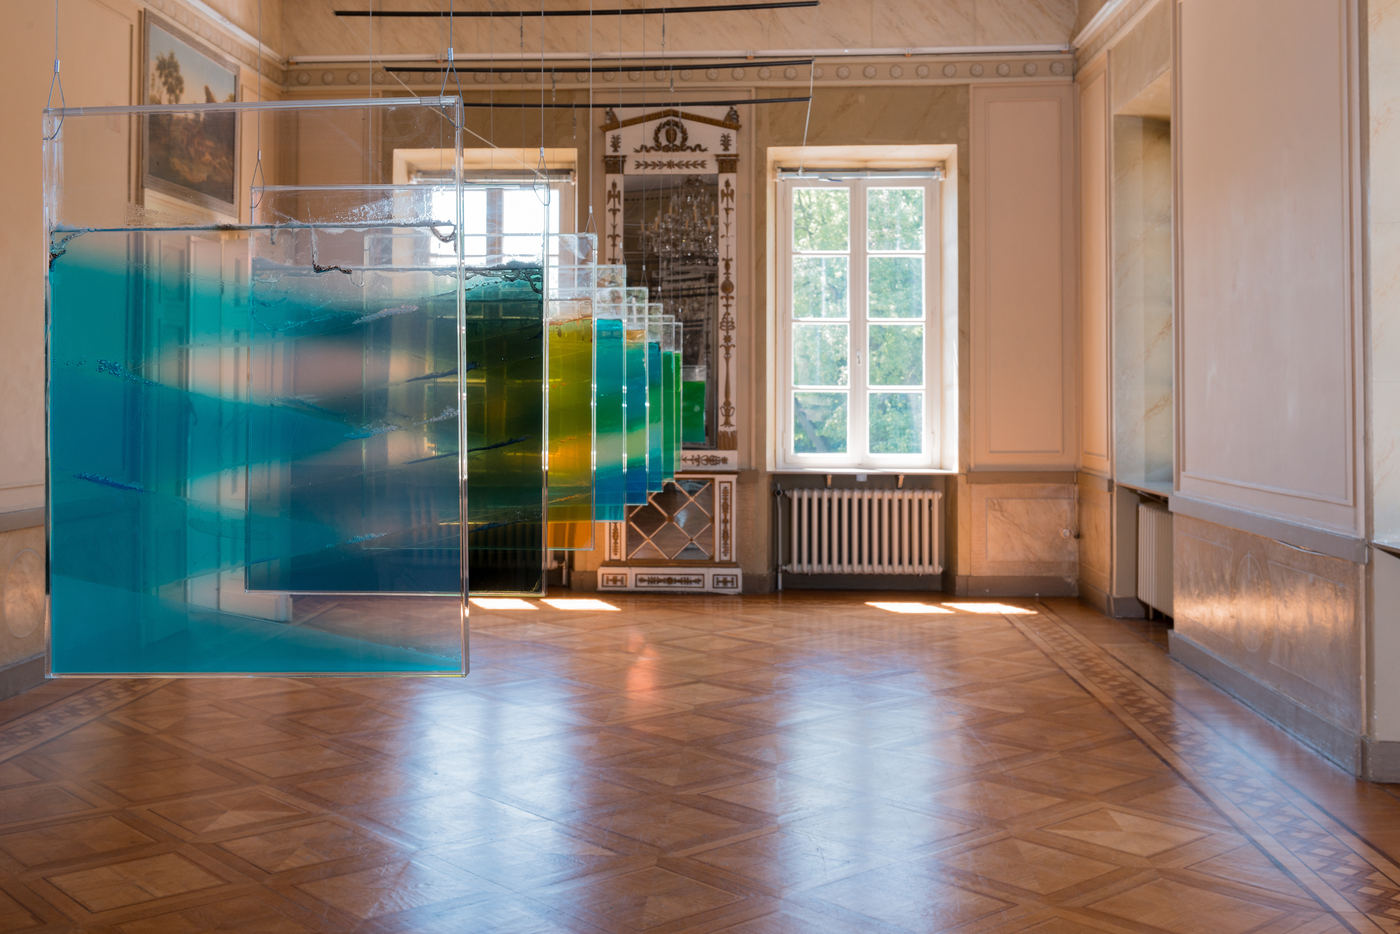 ProcessPerformancePresence_Troemel at Kunstverein Braunschweig